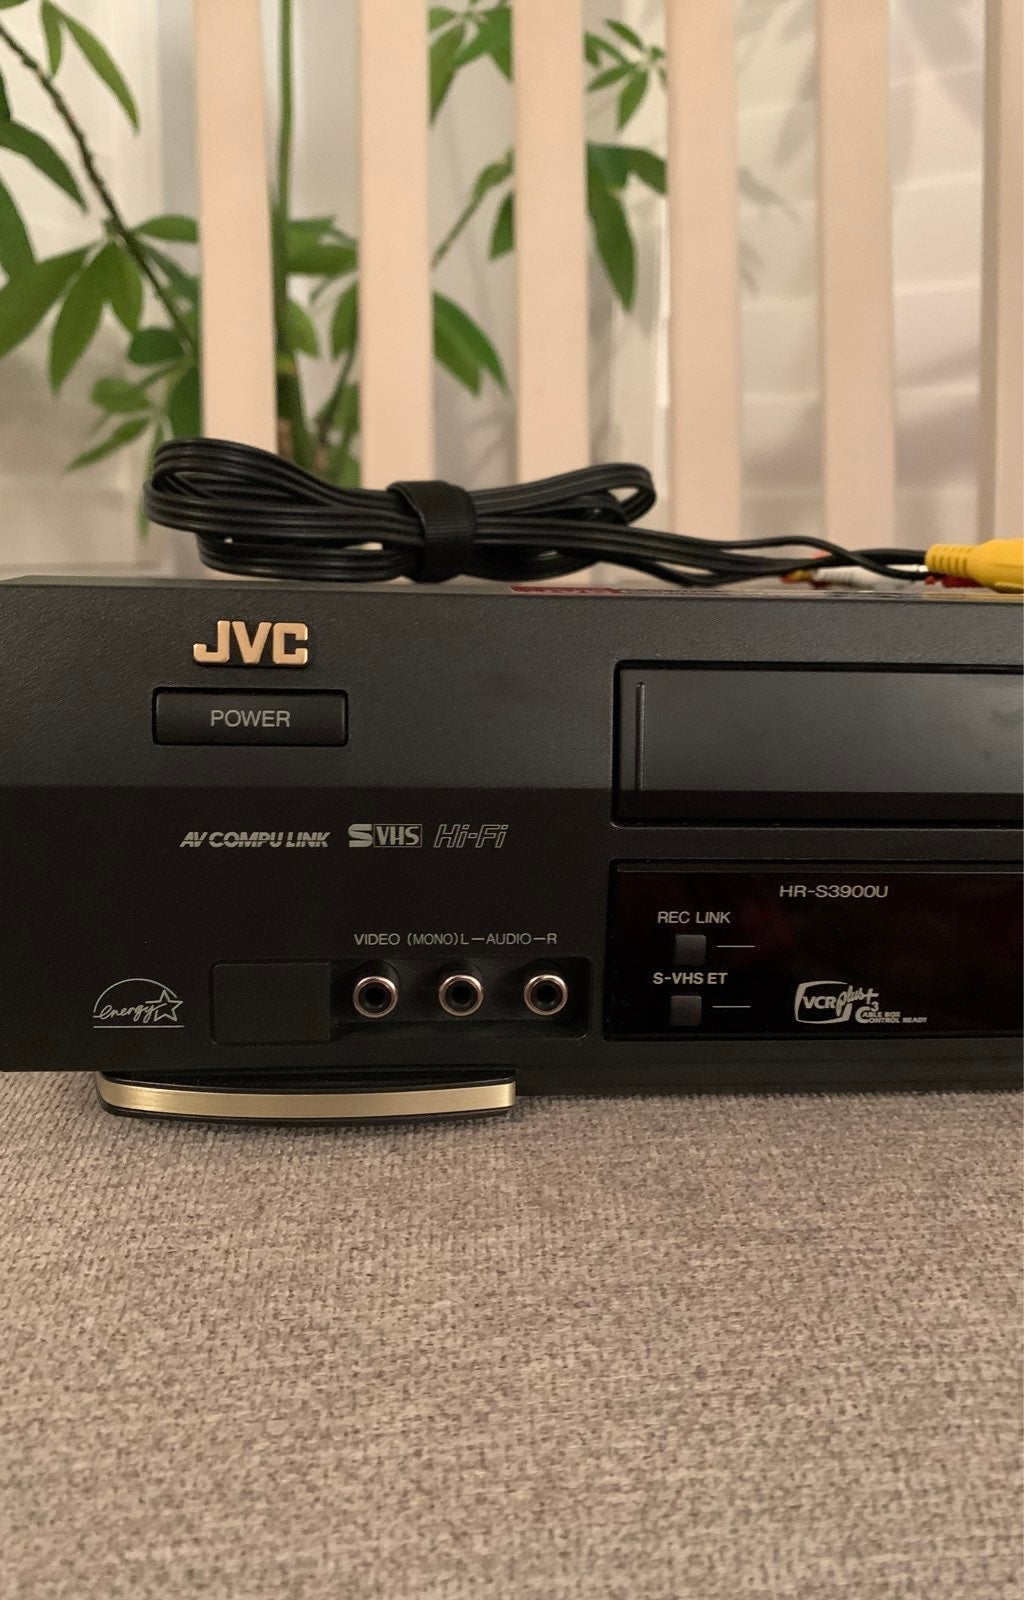 JVC SUPER VHS / VCR ET Plug & Play